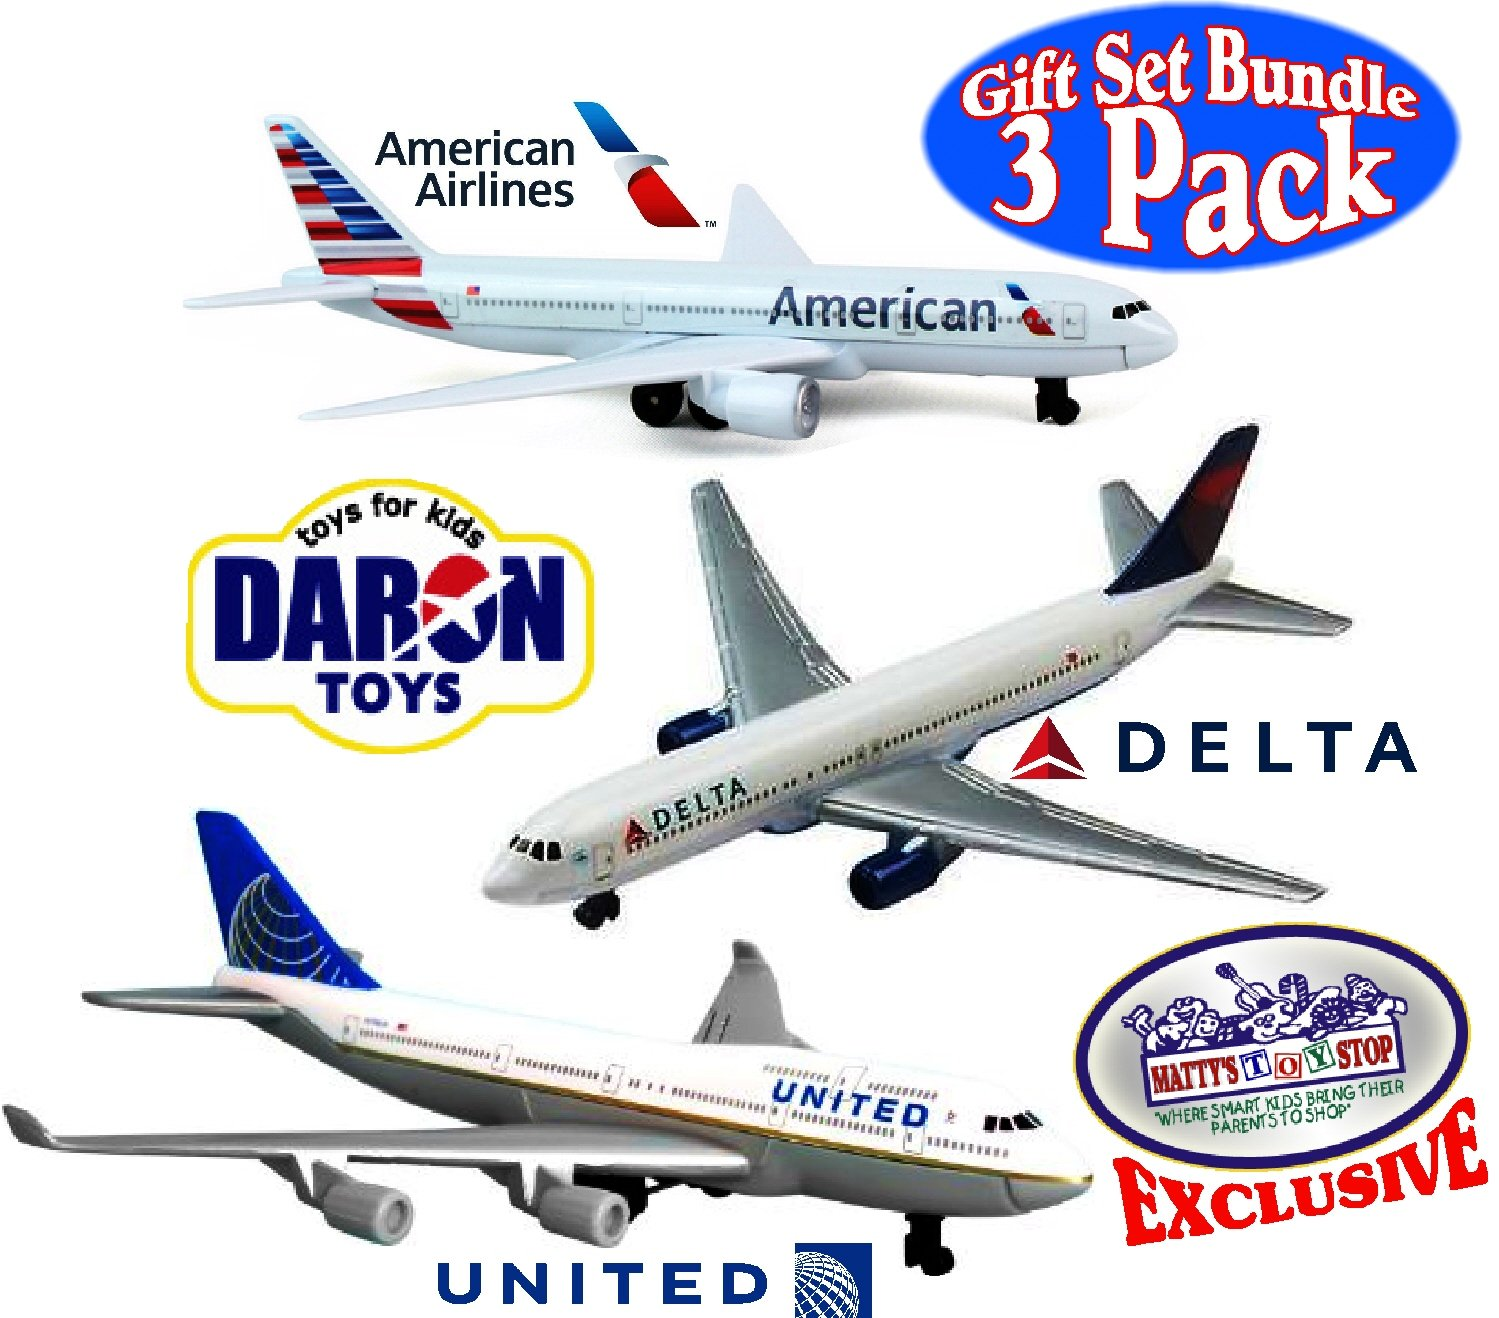 Daron American Airlines, Delta & United Airlines B747 Die-cast Planes Matty's Toy Stop Exclusive Gift Set Bundle - 3 Pack